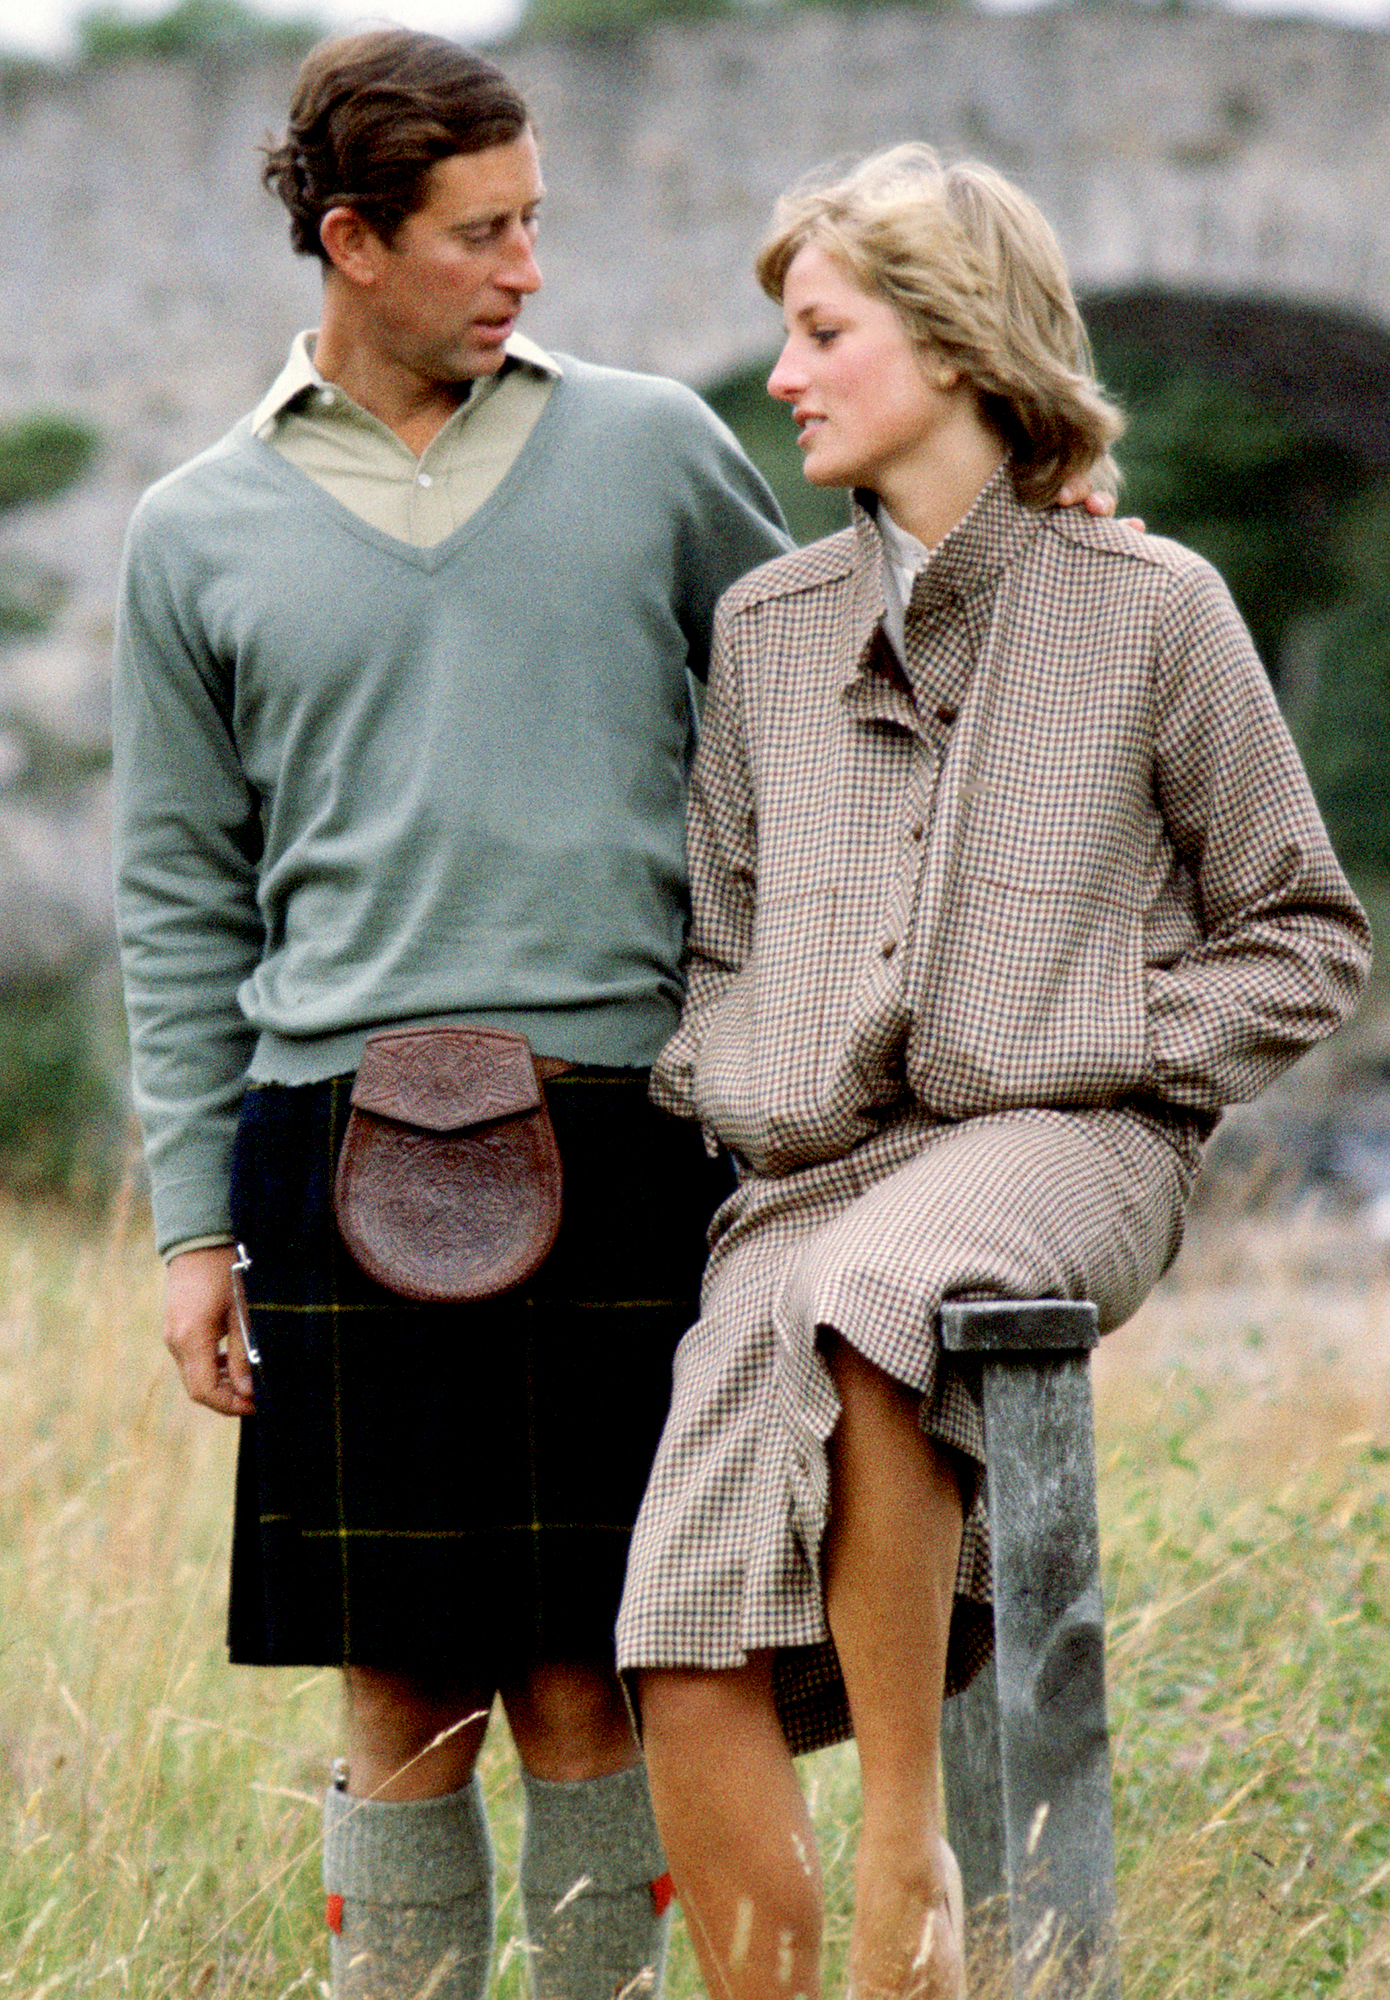 Prince-Charles-princess-diana-feud - BALMORAL, UNITED KINGDOM – AUGUST 19: Prince Charles, Prince of Wales with his arm around Princess Diana, Princess of Wales as they sit on a style during their honeymoon at Balmoral in Scotland. The Princess is wearing a suit designed by Bill Pashley.